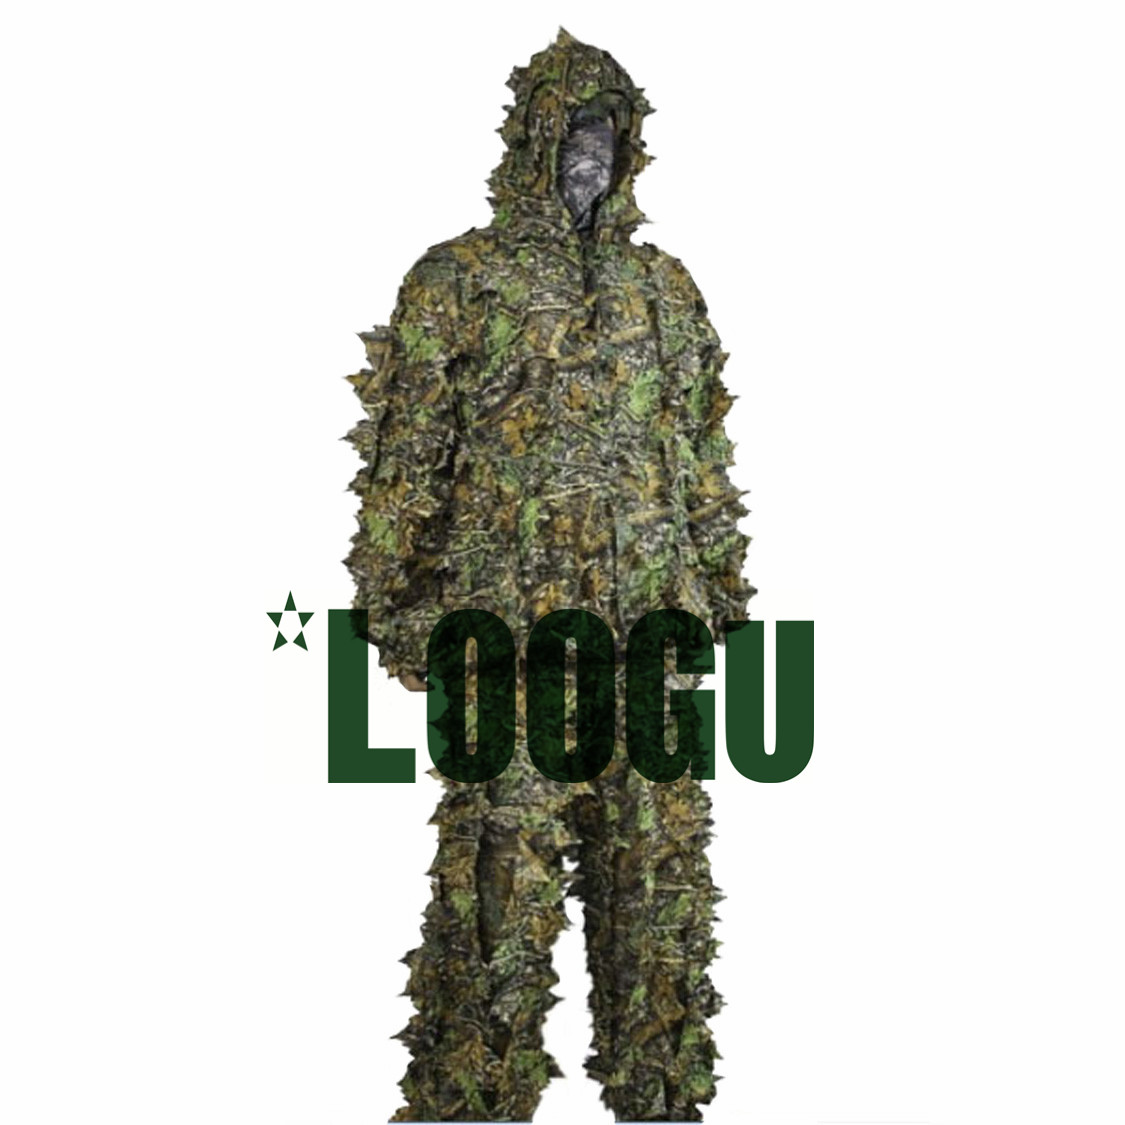 LOOGU Outdoor Woodland camouflage tactical camo ghillie suit Kit Cloak Military 3D Leaf Jungle Hunting camouflage sniper clothes hunting woodland camouflage sniper ghillie suit set